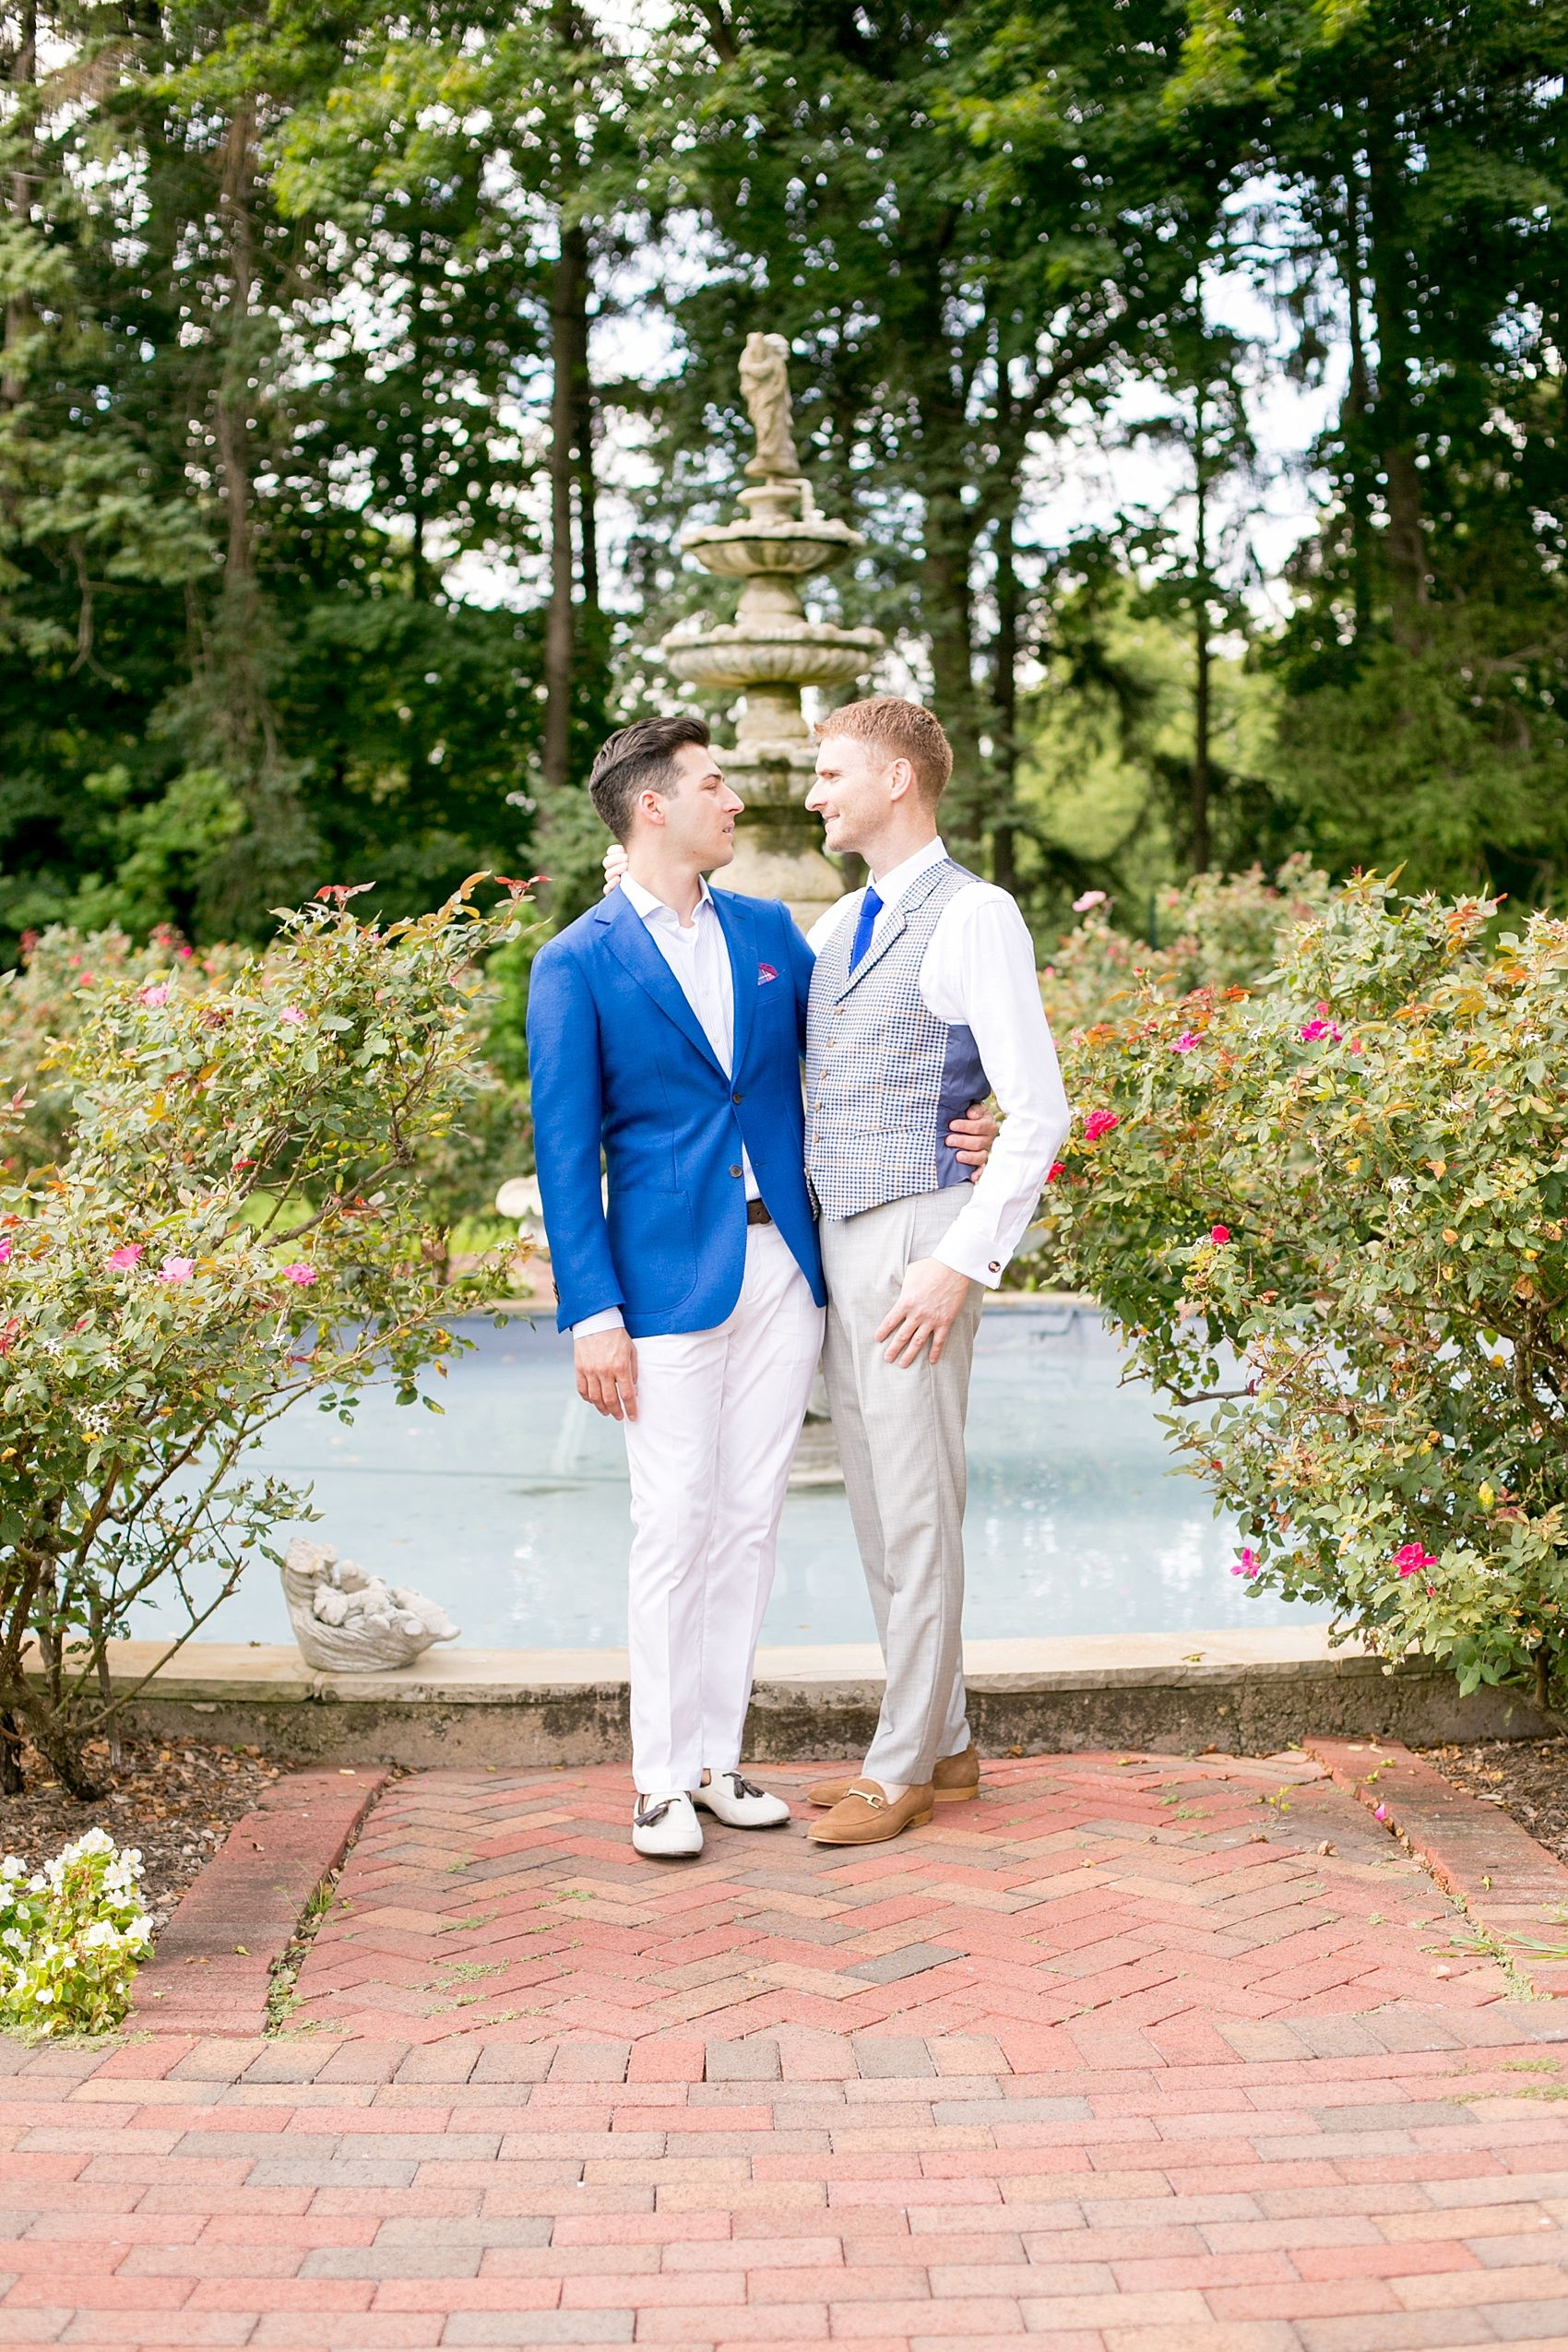 Mikkel Paige Photography photos of a summer, daytime gay wedding. An image of the grooms in a vest and blue suit in front of a fountain and pool, with rose bushes at The Manor, in West Orange New Jersey.